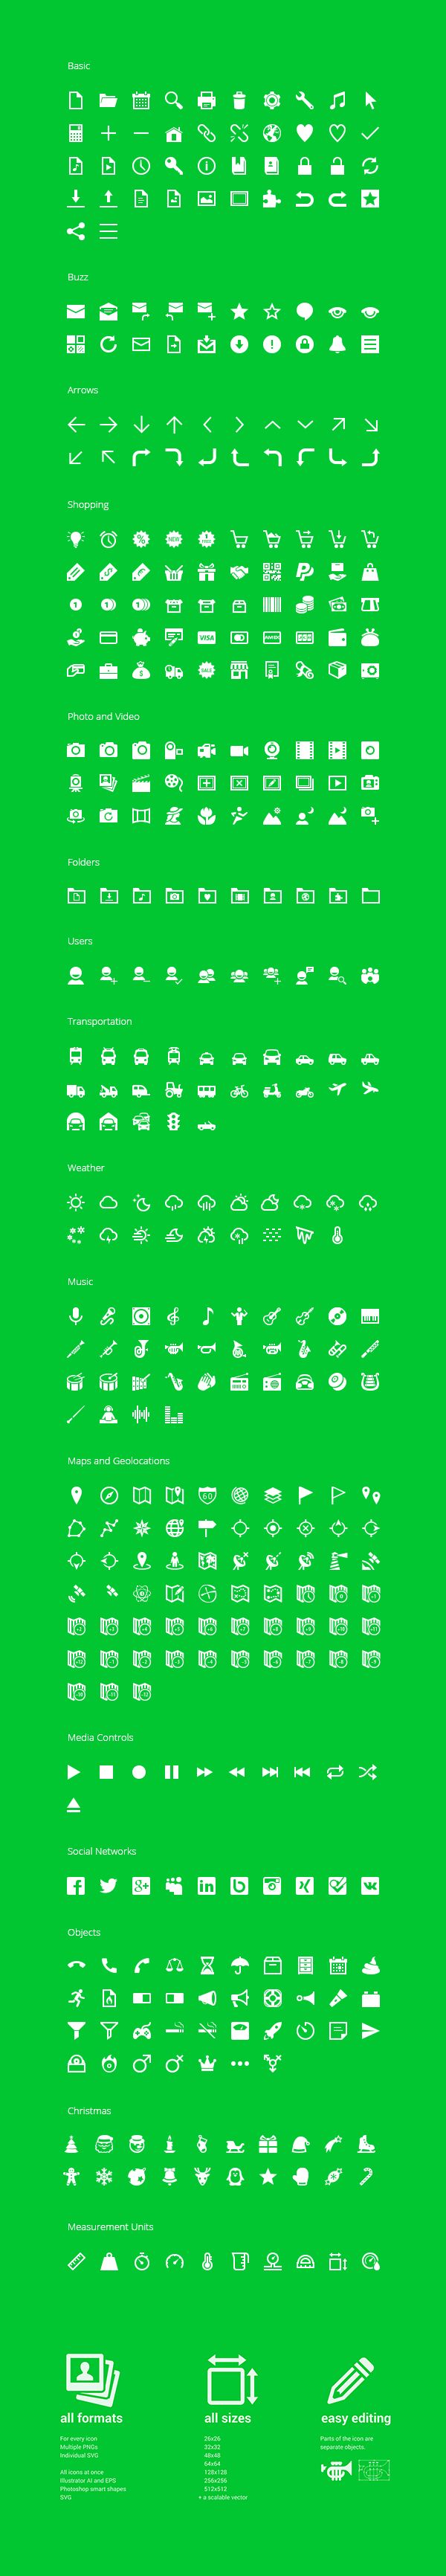 Nice 350 Free Android Icons. Icons8 team has launched an amazing pack of 350 Android icons that includes editable AI EPS PSD(vector shapes) SVG to create web fonts and PNG in different sizes form 24x24px to 512x512px. This set may turn into a premium product eventually so hurry up and grab it now while free! #android #featured #freepsd #freebie #freemium #icon #premium #resource Check more at http://psdfinder.com/free-psd/350-free-android-icons